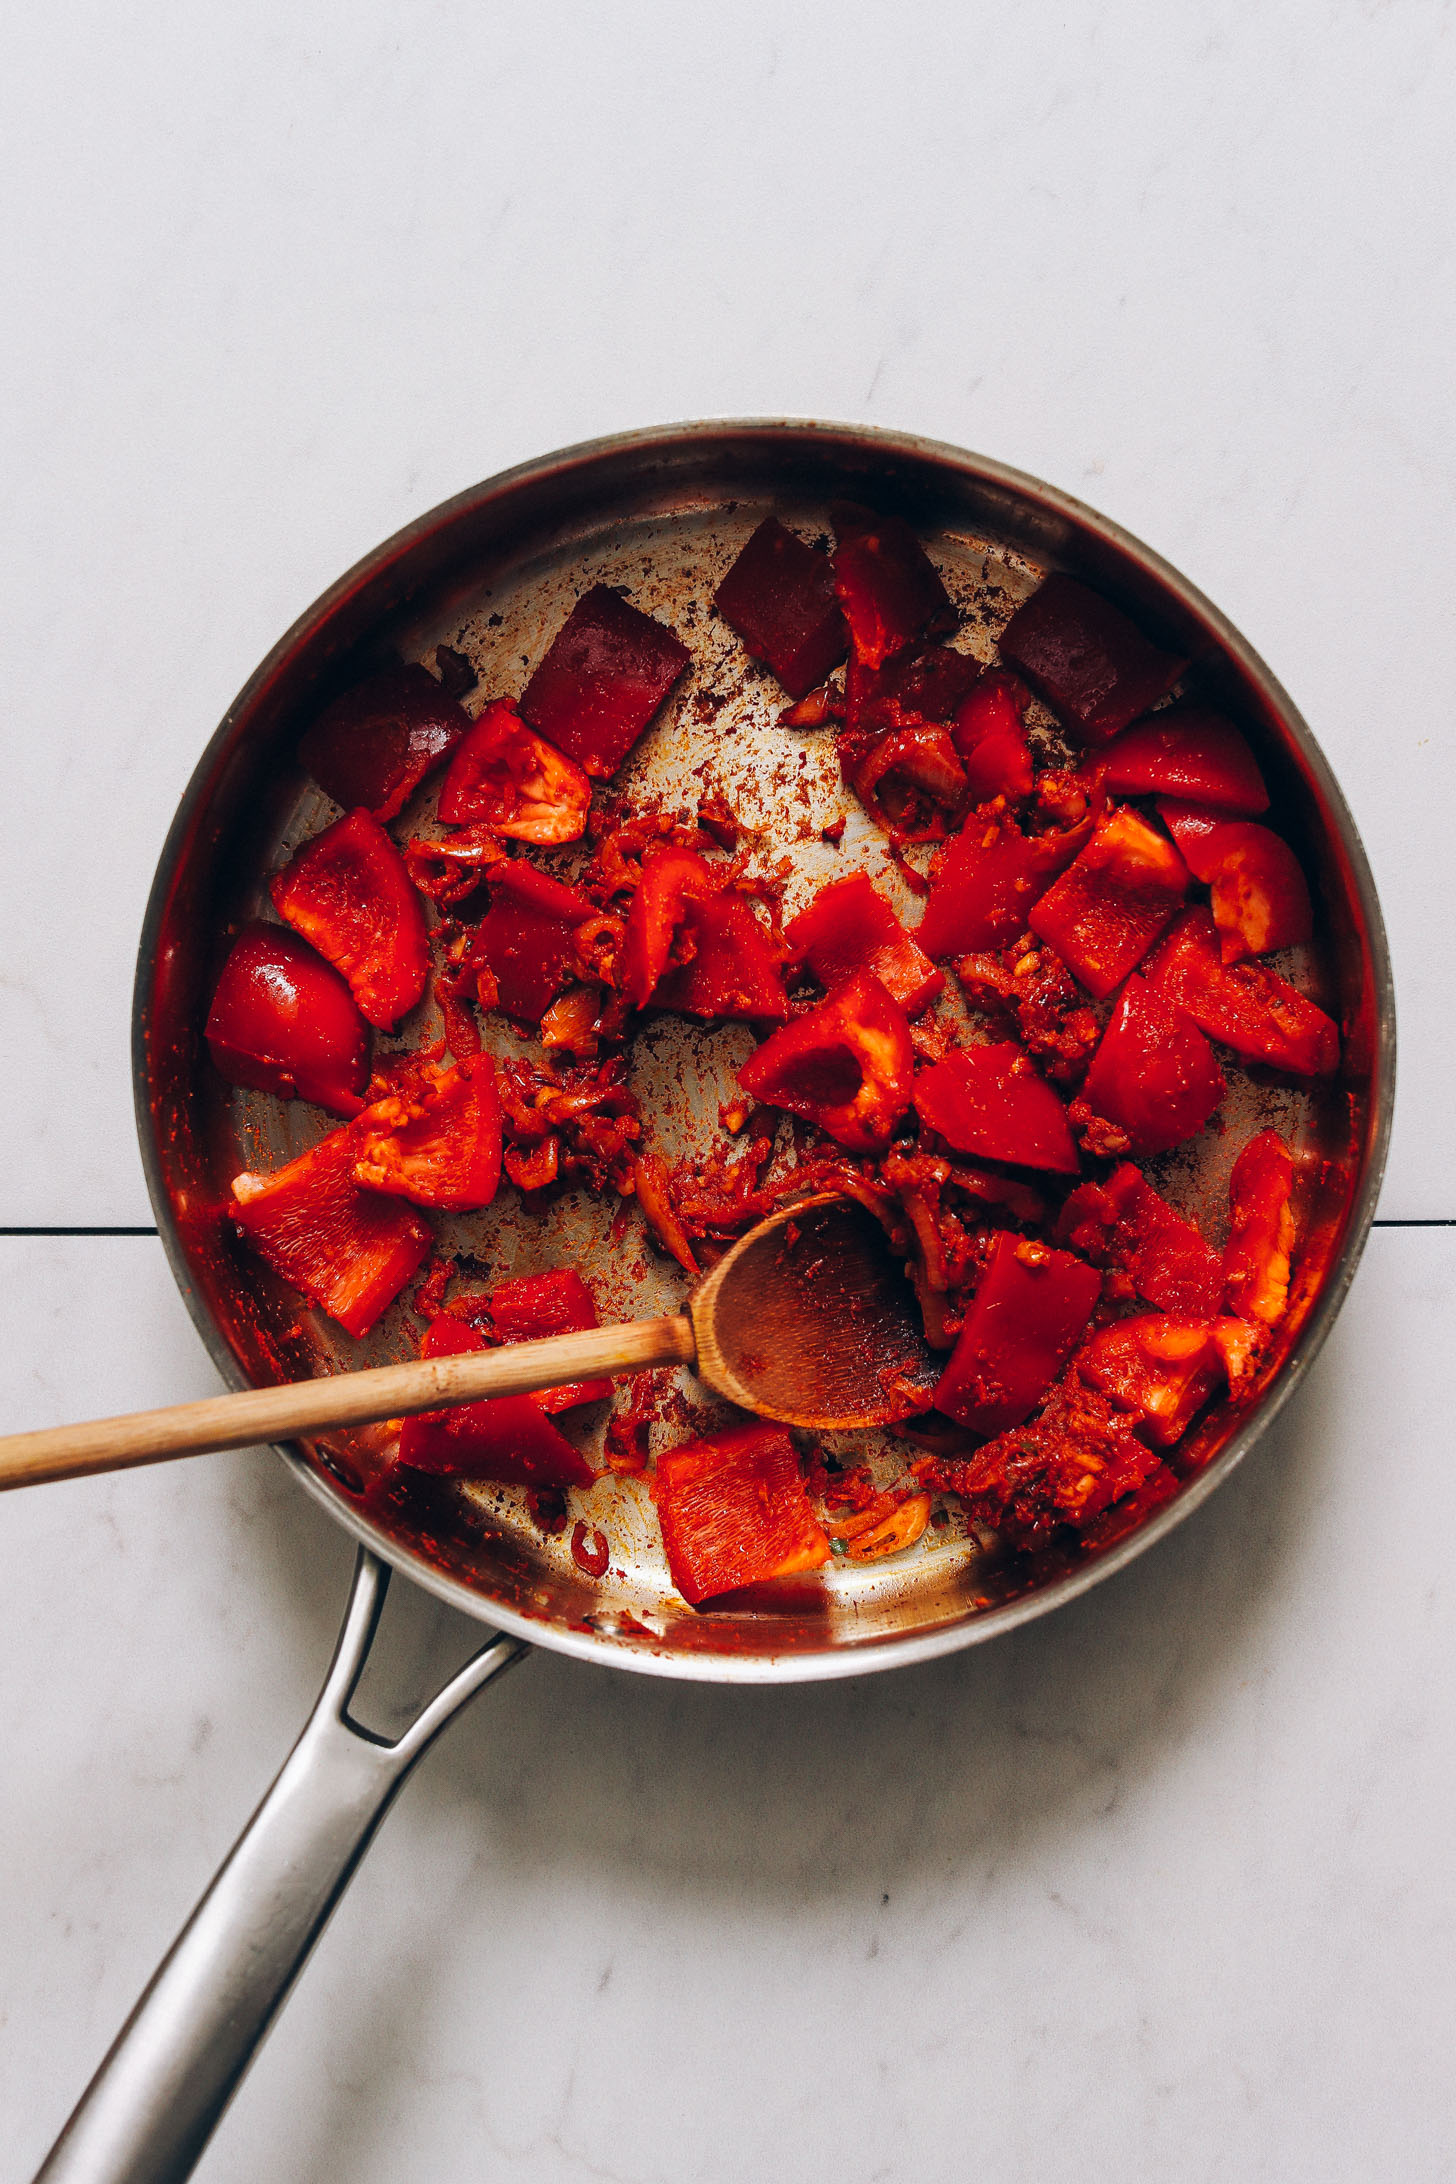 Skillet of sliced bell pepper, shallot, red curry paste, and other ingredients